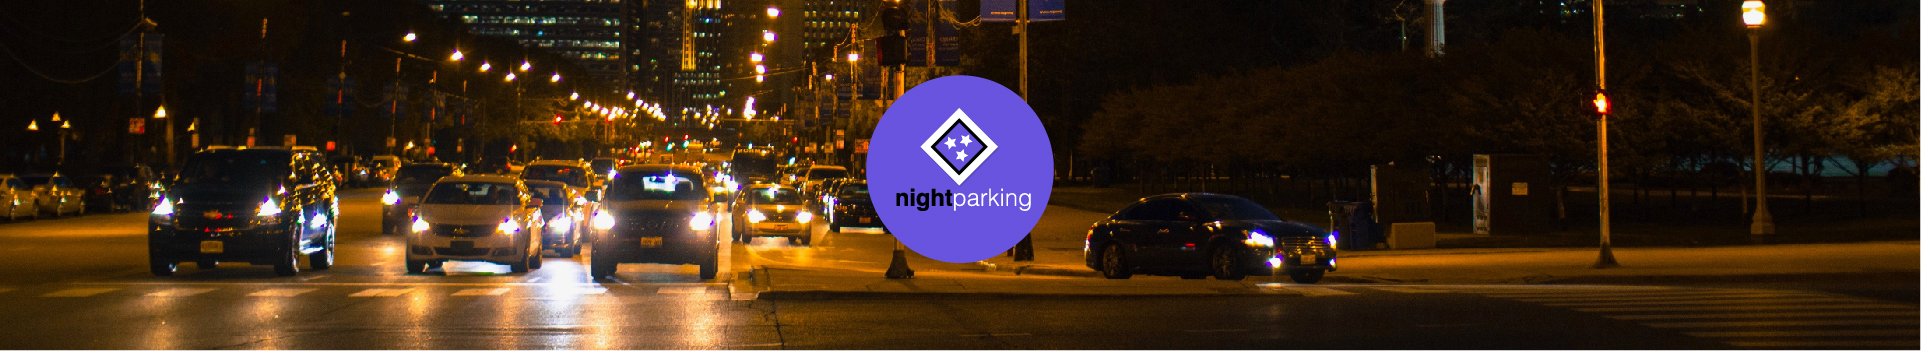 final_nightparking_slider